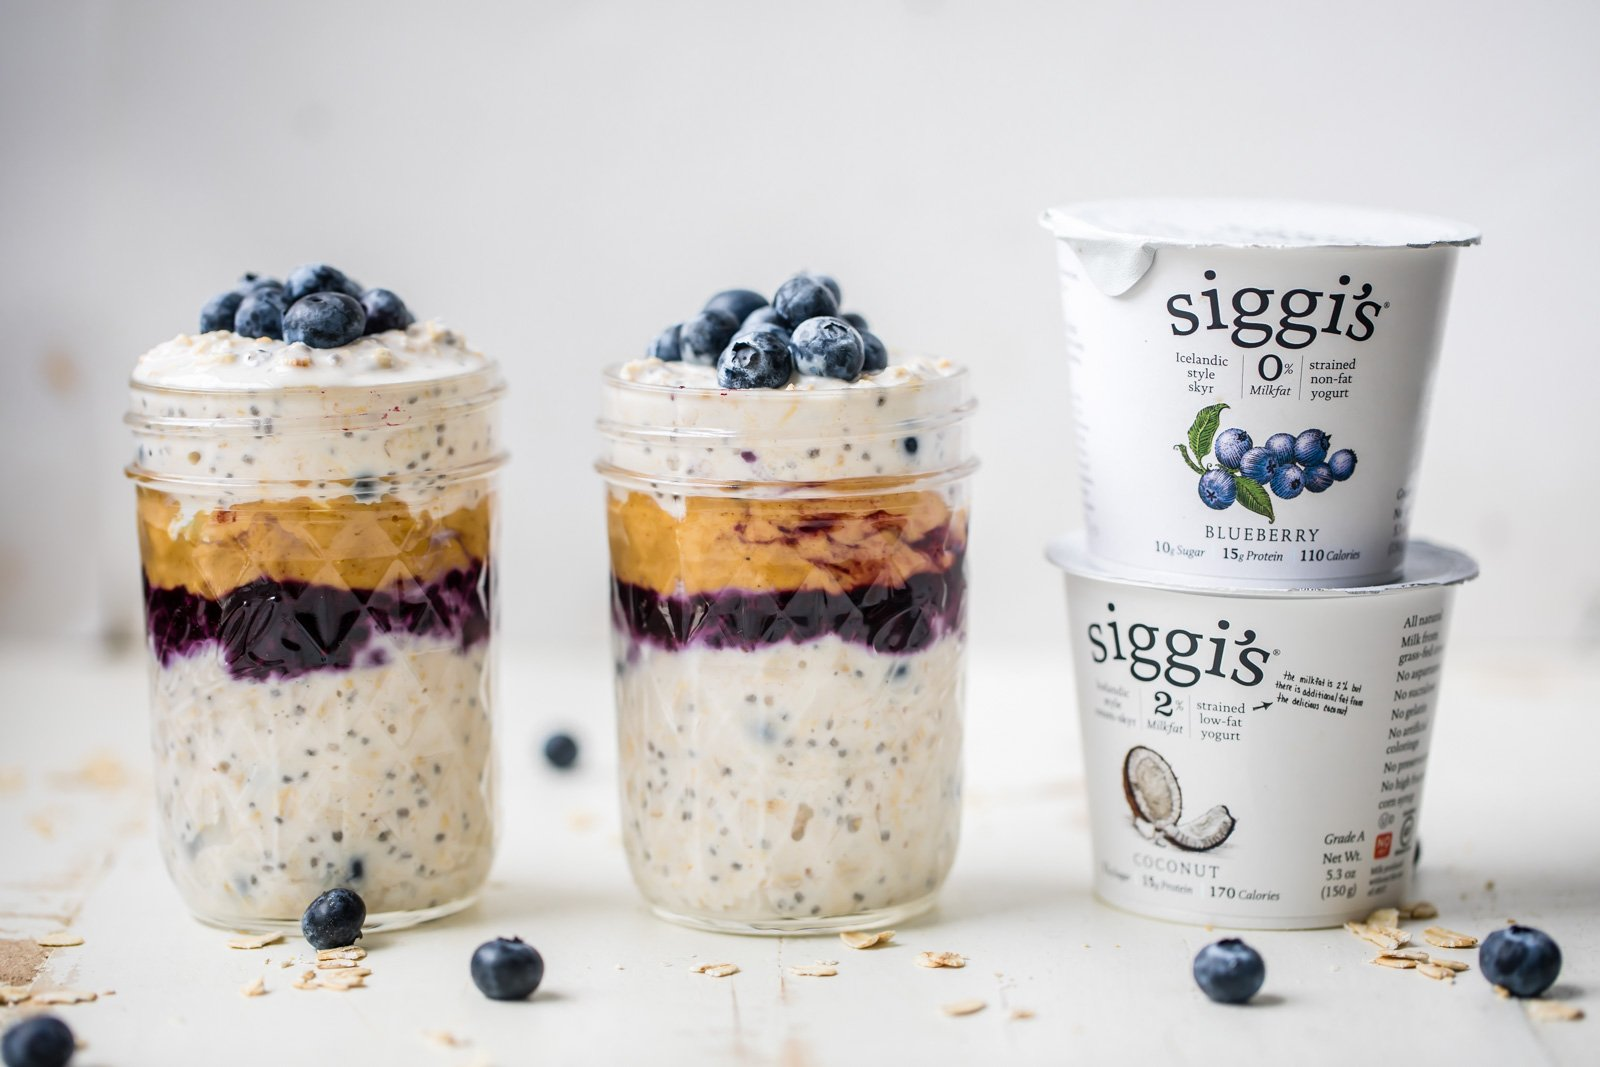 Amazing peanut butter blueberry overnight oats that taste like a classic PB&J. You'll love these healthy, no sugar added overnight oats made with siggi's yogurt for an extra boost of protein! Make them ahead of time for a healthy meal prep friendly breakfast. This post is in partnership with siggi's.